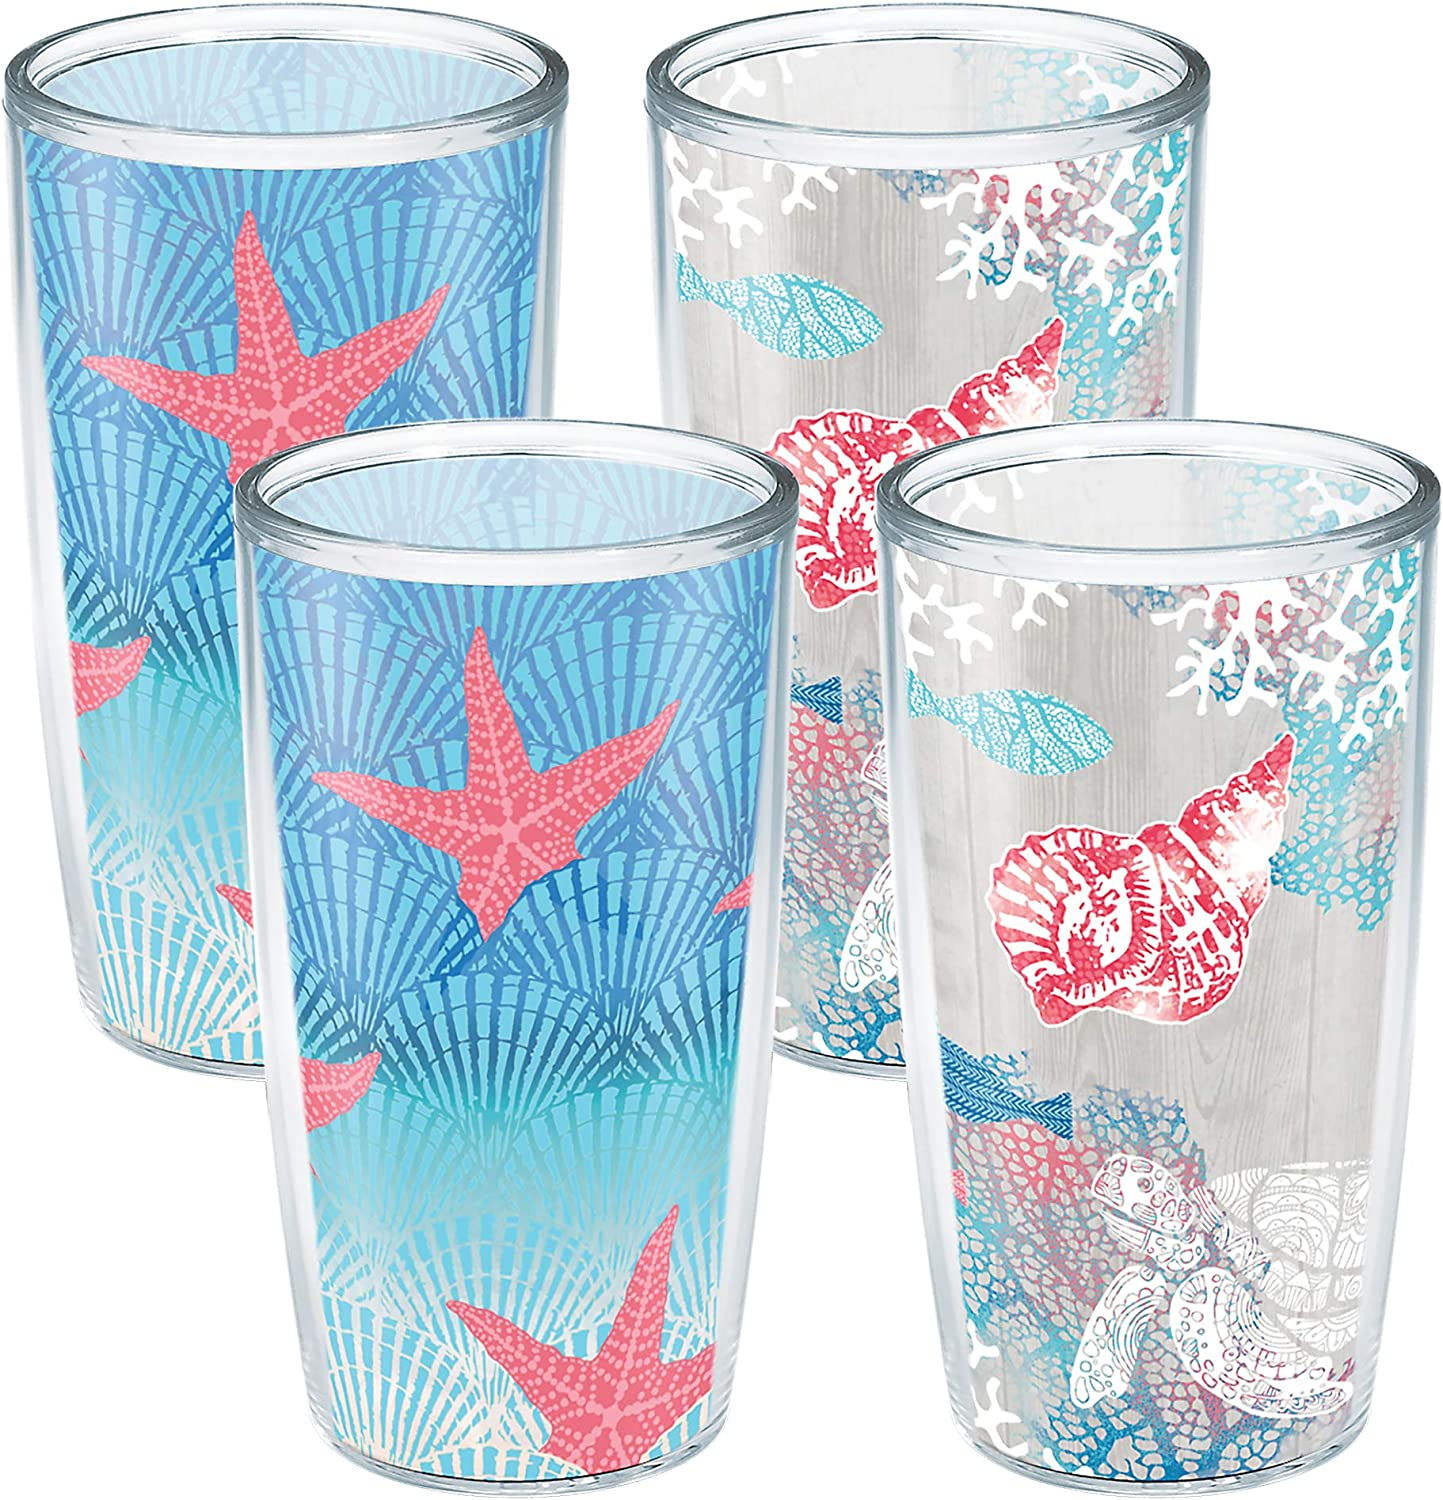 Tervis Modern Tabletop Collection Made USA in Quantity limited Insu Walled Double Max 51% OFF